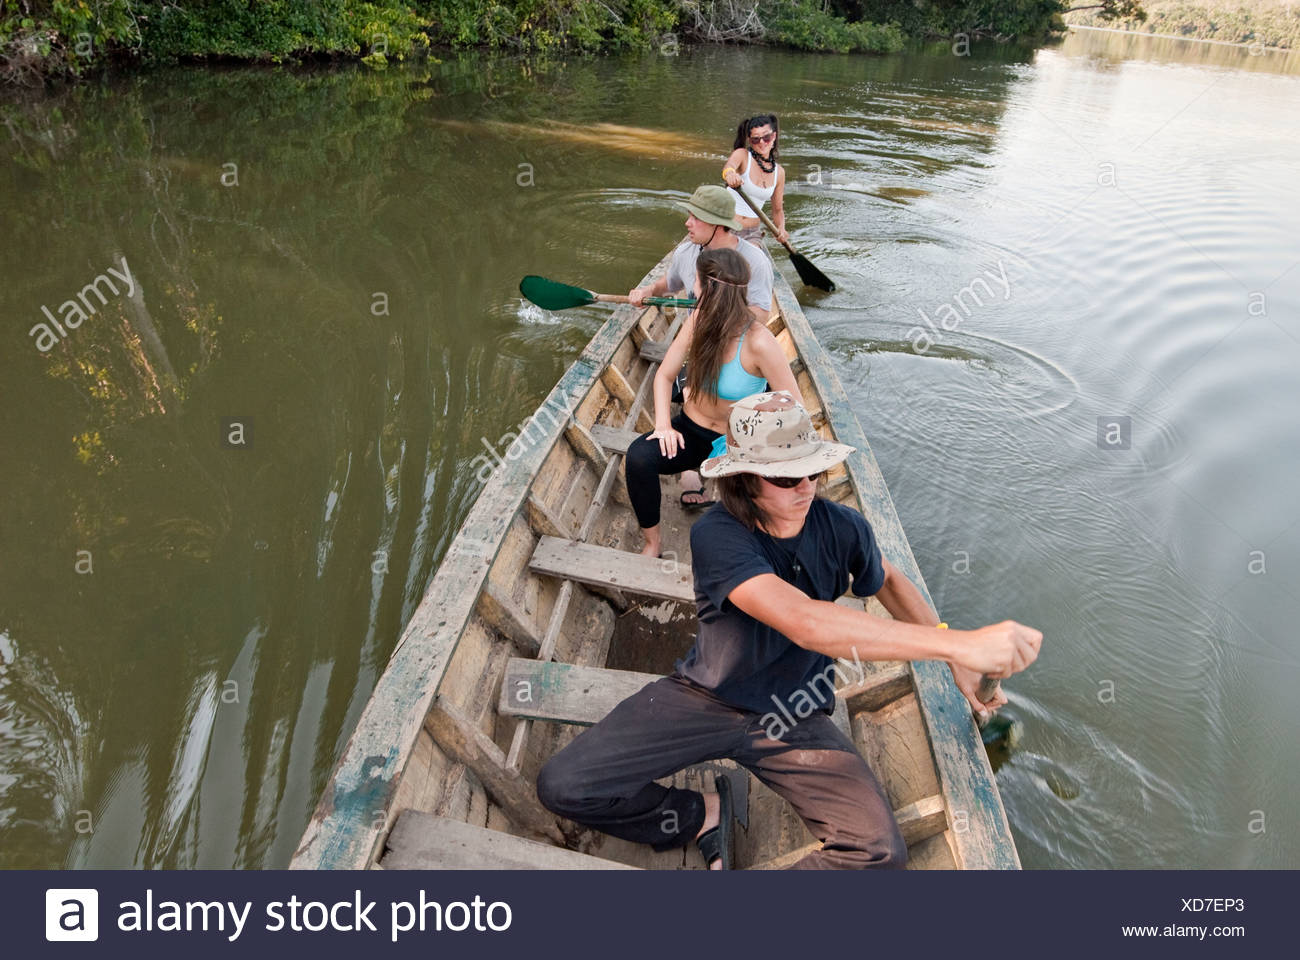 A group of young people paddling a canoe and having fun on lake sandoval. - Stock Image